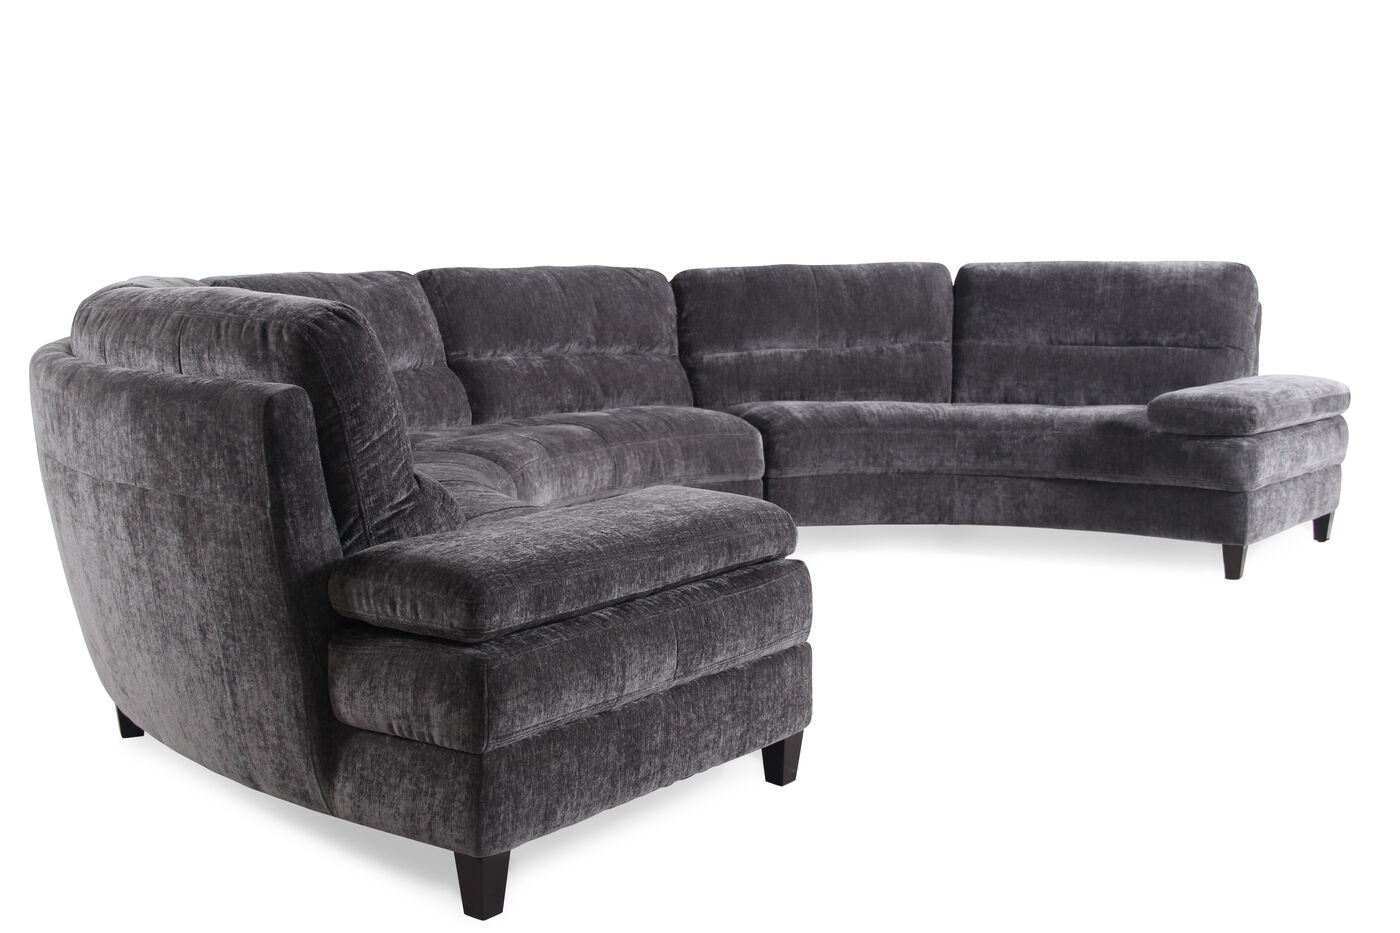 Boulevard Slate Three Piece Sectional. Boulevard Slate Three Piece Sectional   Mathis Brothers Furniture